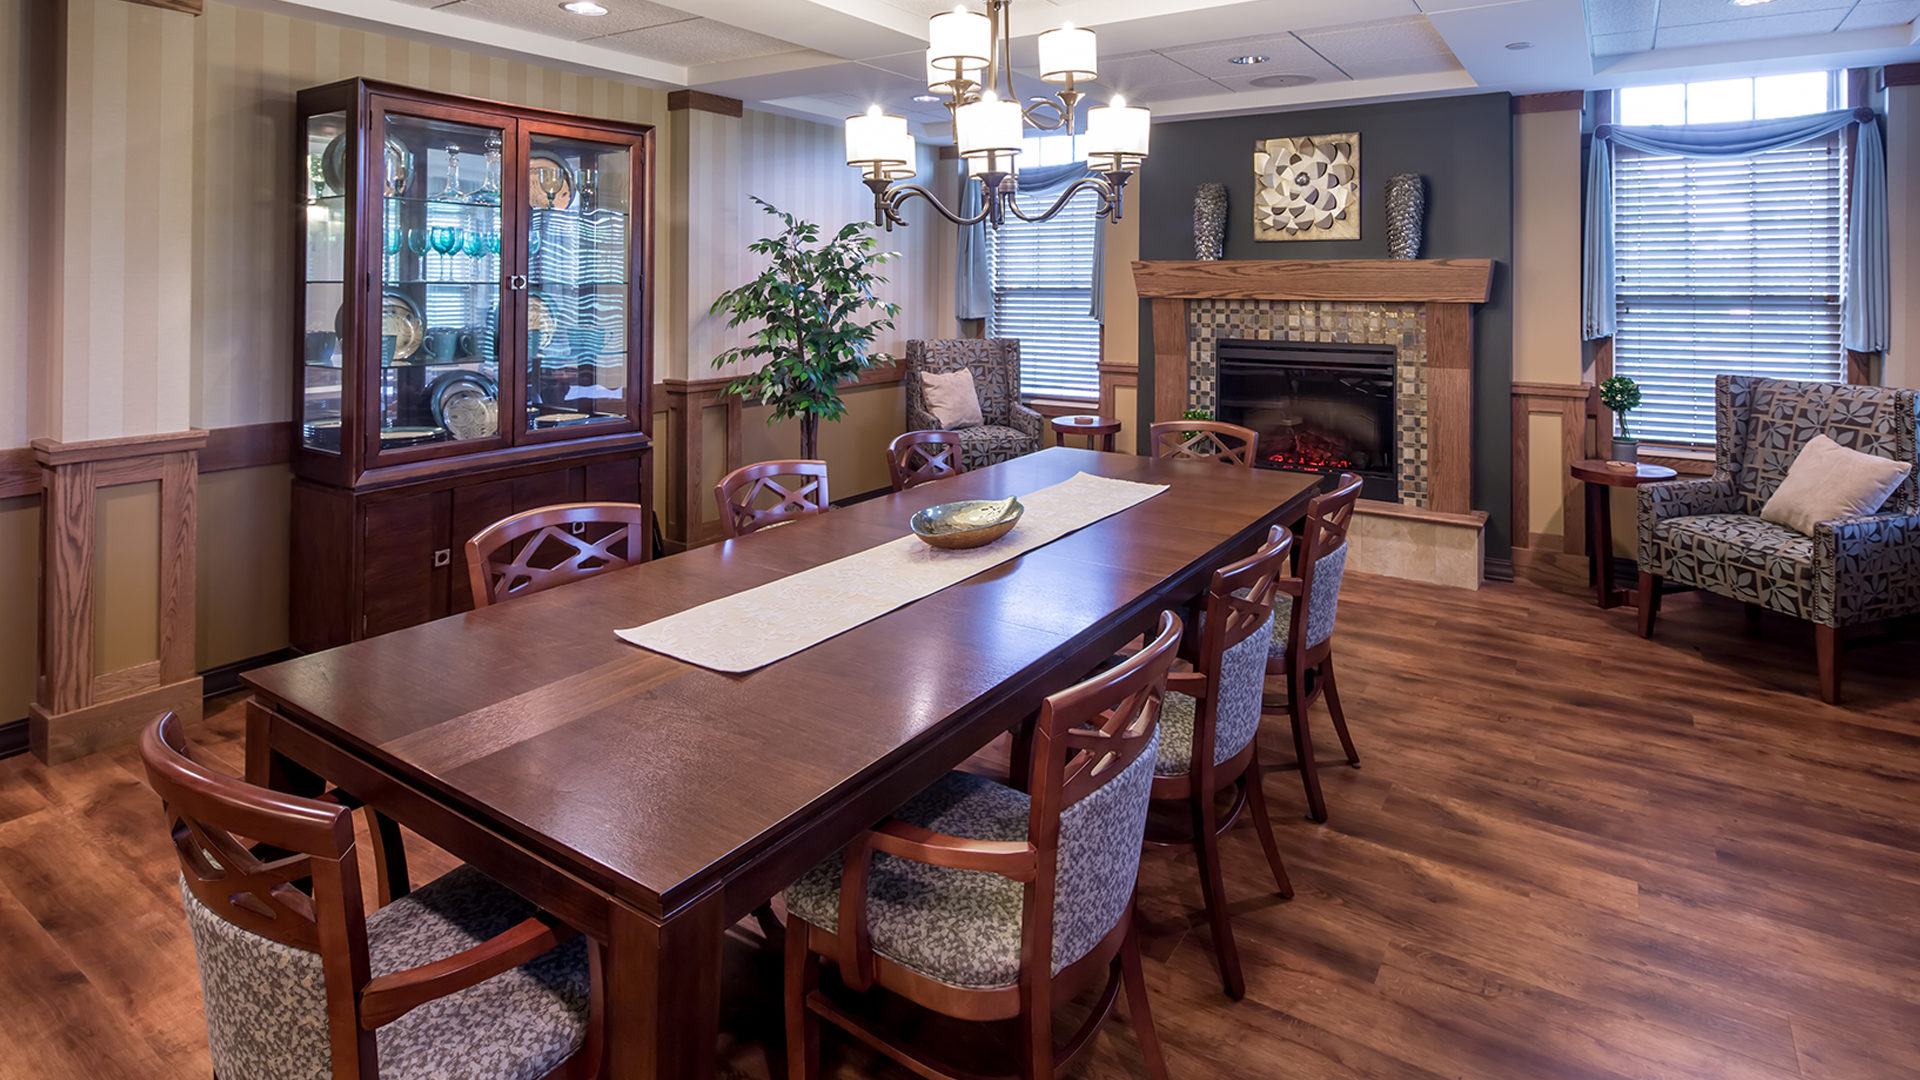 Ebenezer Arbors at Ridges Senior Assisted Living Interior Private Dining Room